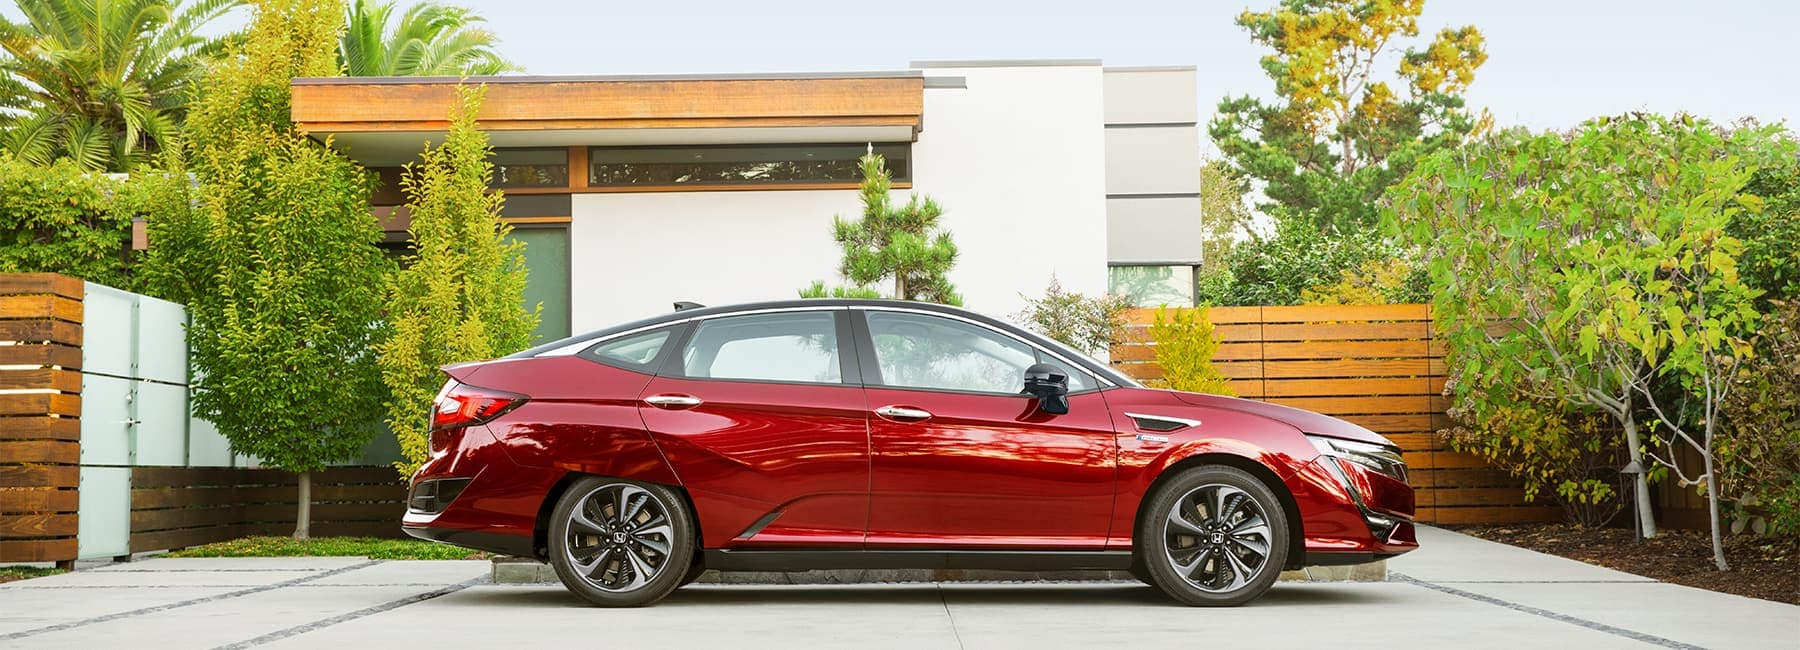 2020 Honda Clarity parked side view